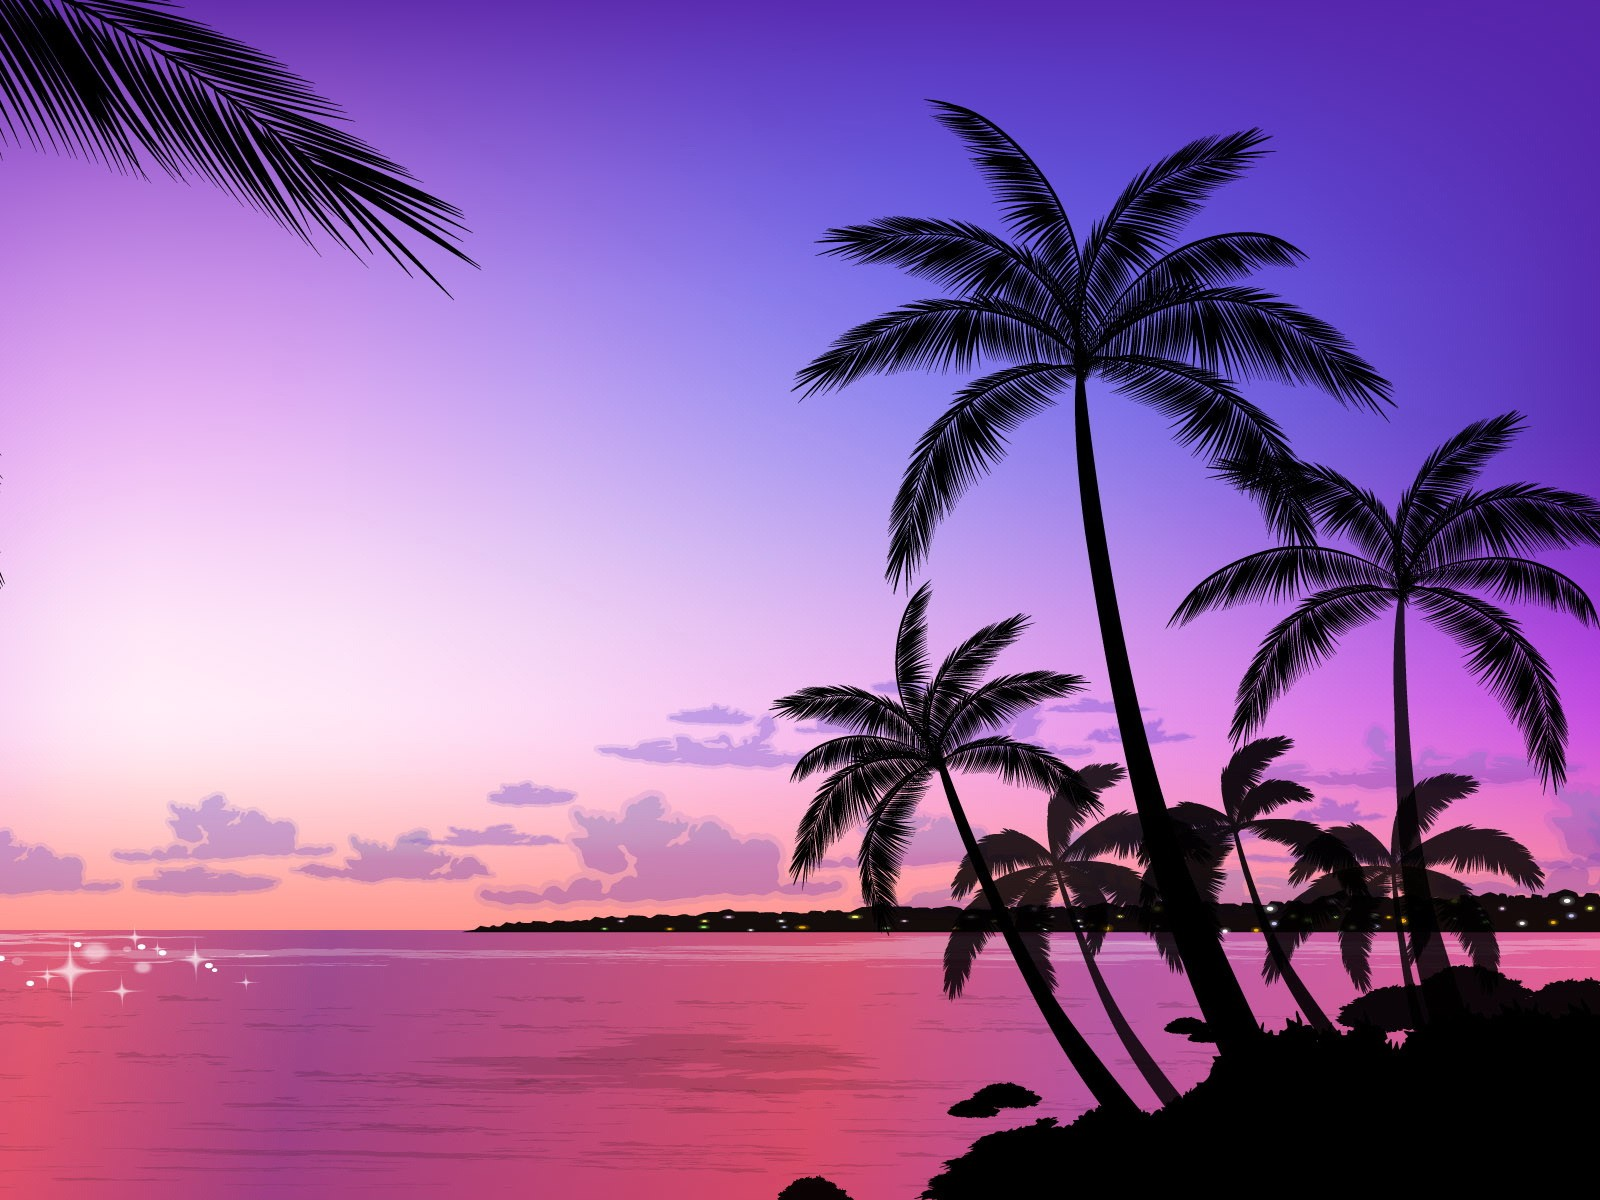 Top Collection of Palm Trees Wallpapers, Palm Trees Wallpaper 1600x1200